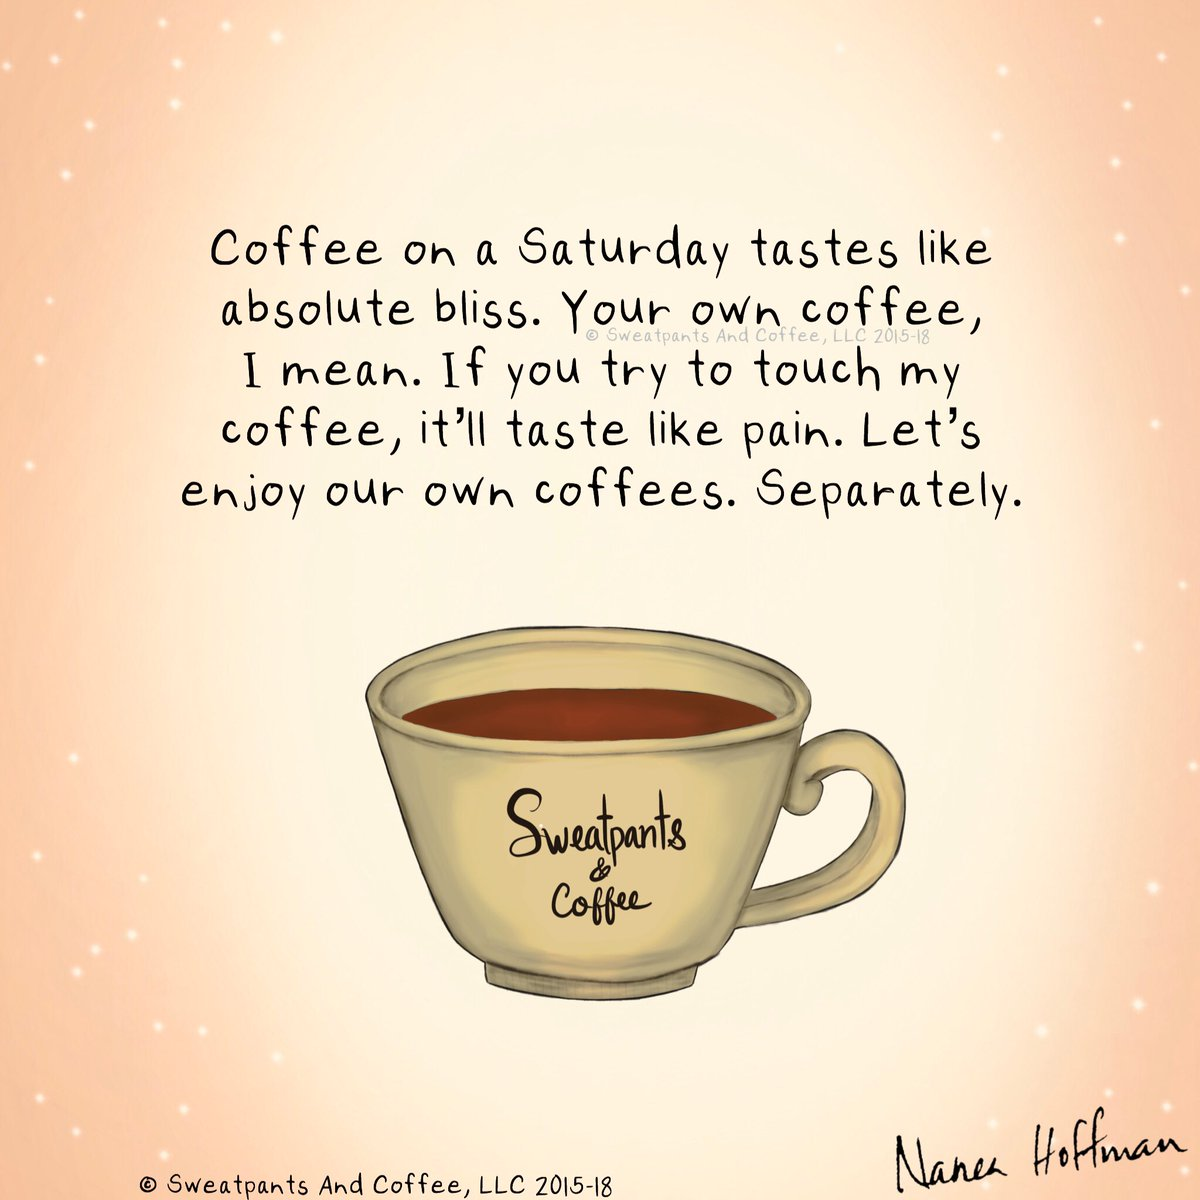 Sweatpants Coffee On Twitter Happy Weekend Don T Touch My Coffee Coffee Coffeetime Coffeelover Coffeequotes Coffeememe Sweatpantsandcoffee Https T Co Dwh2noflmk